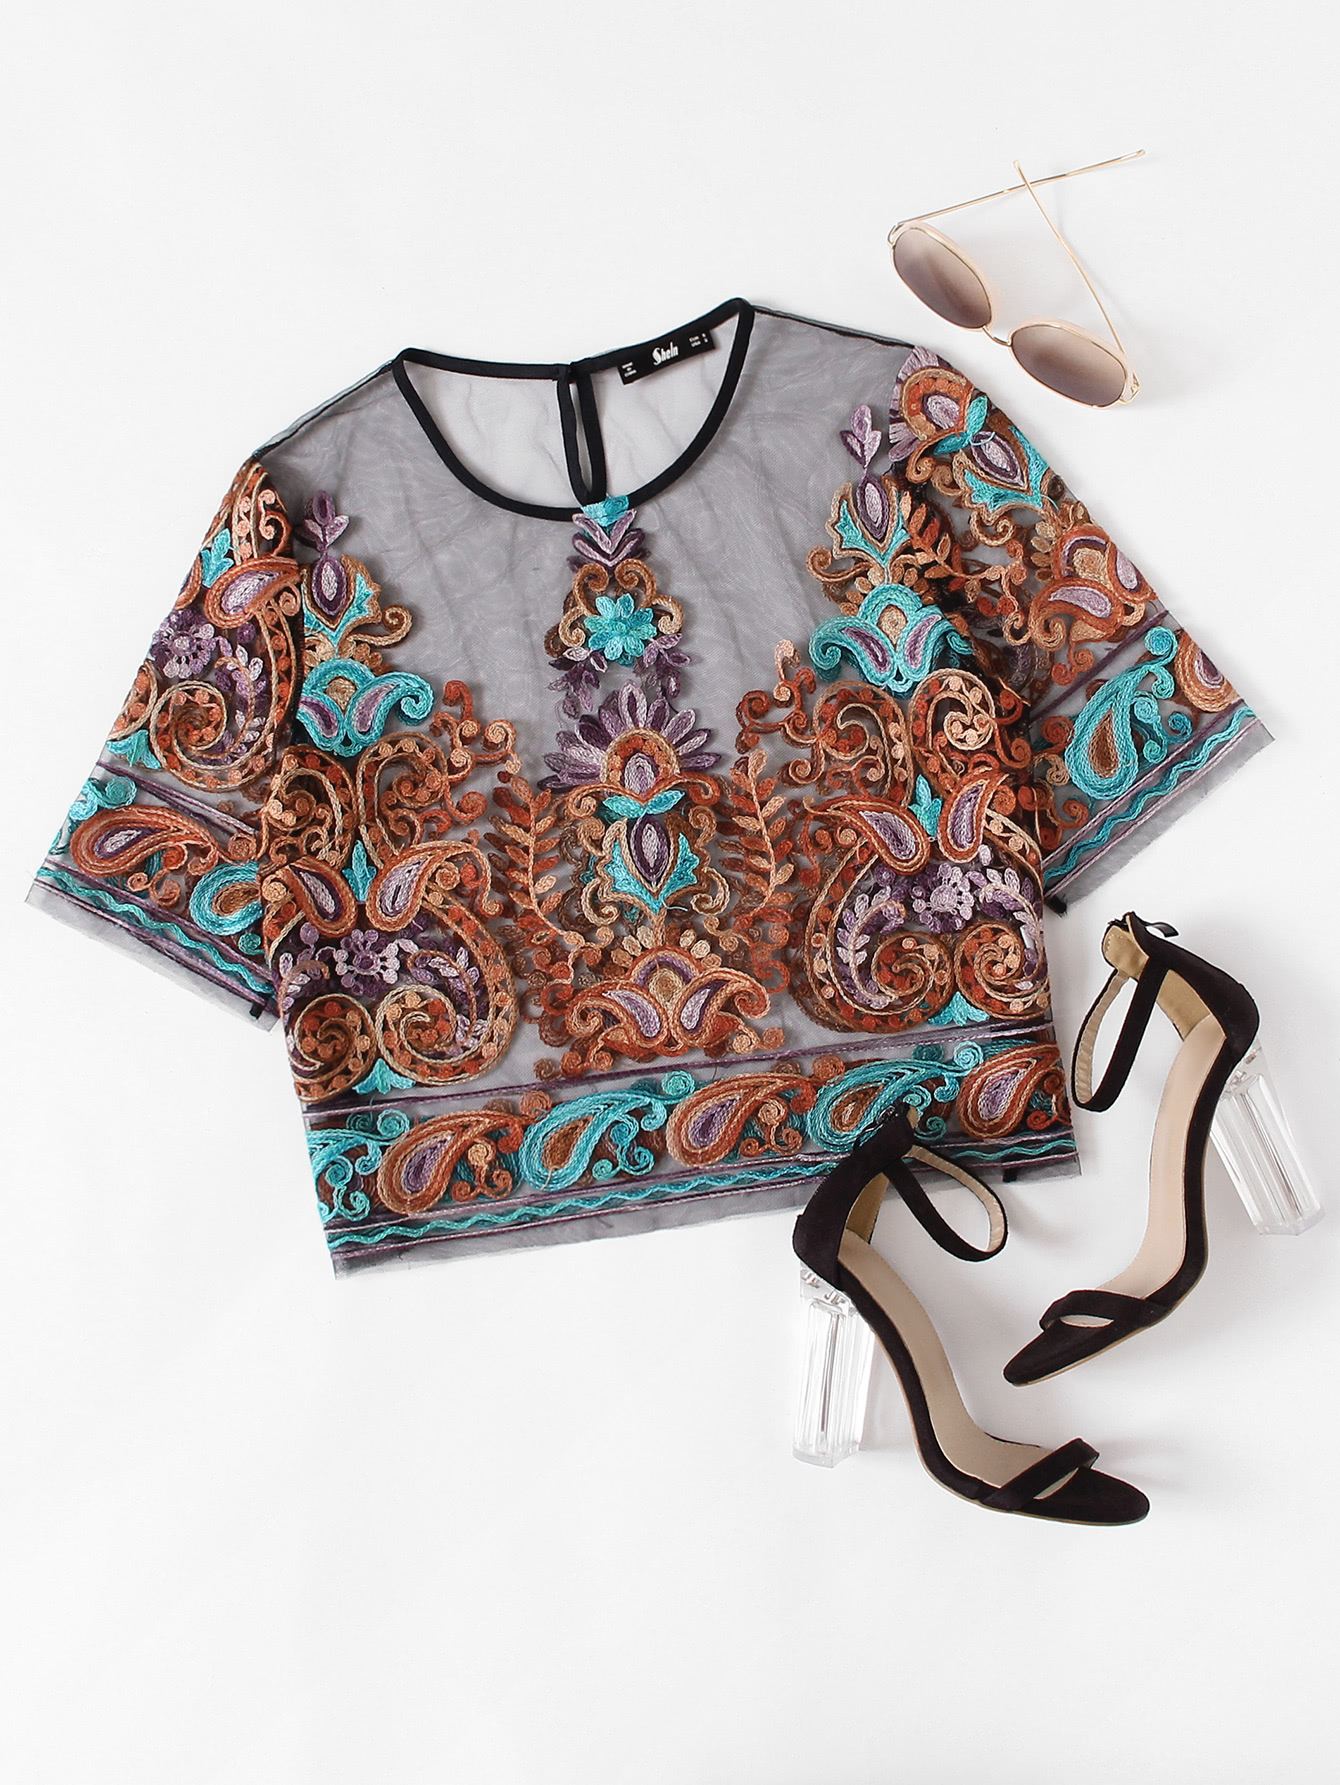 Buttoned Keyhole Botanical Embroidered Mesh Top buttoned keyhole back 2 in 1 embroidered mesh top